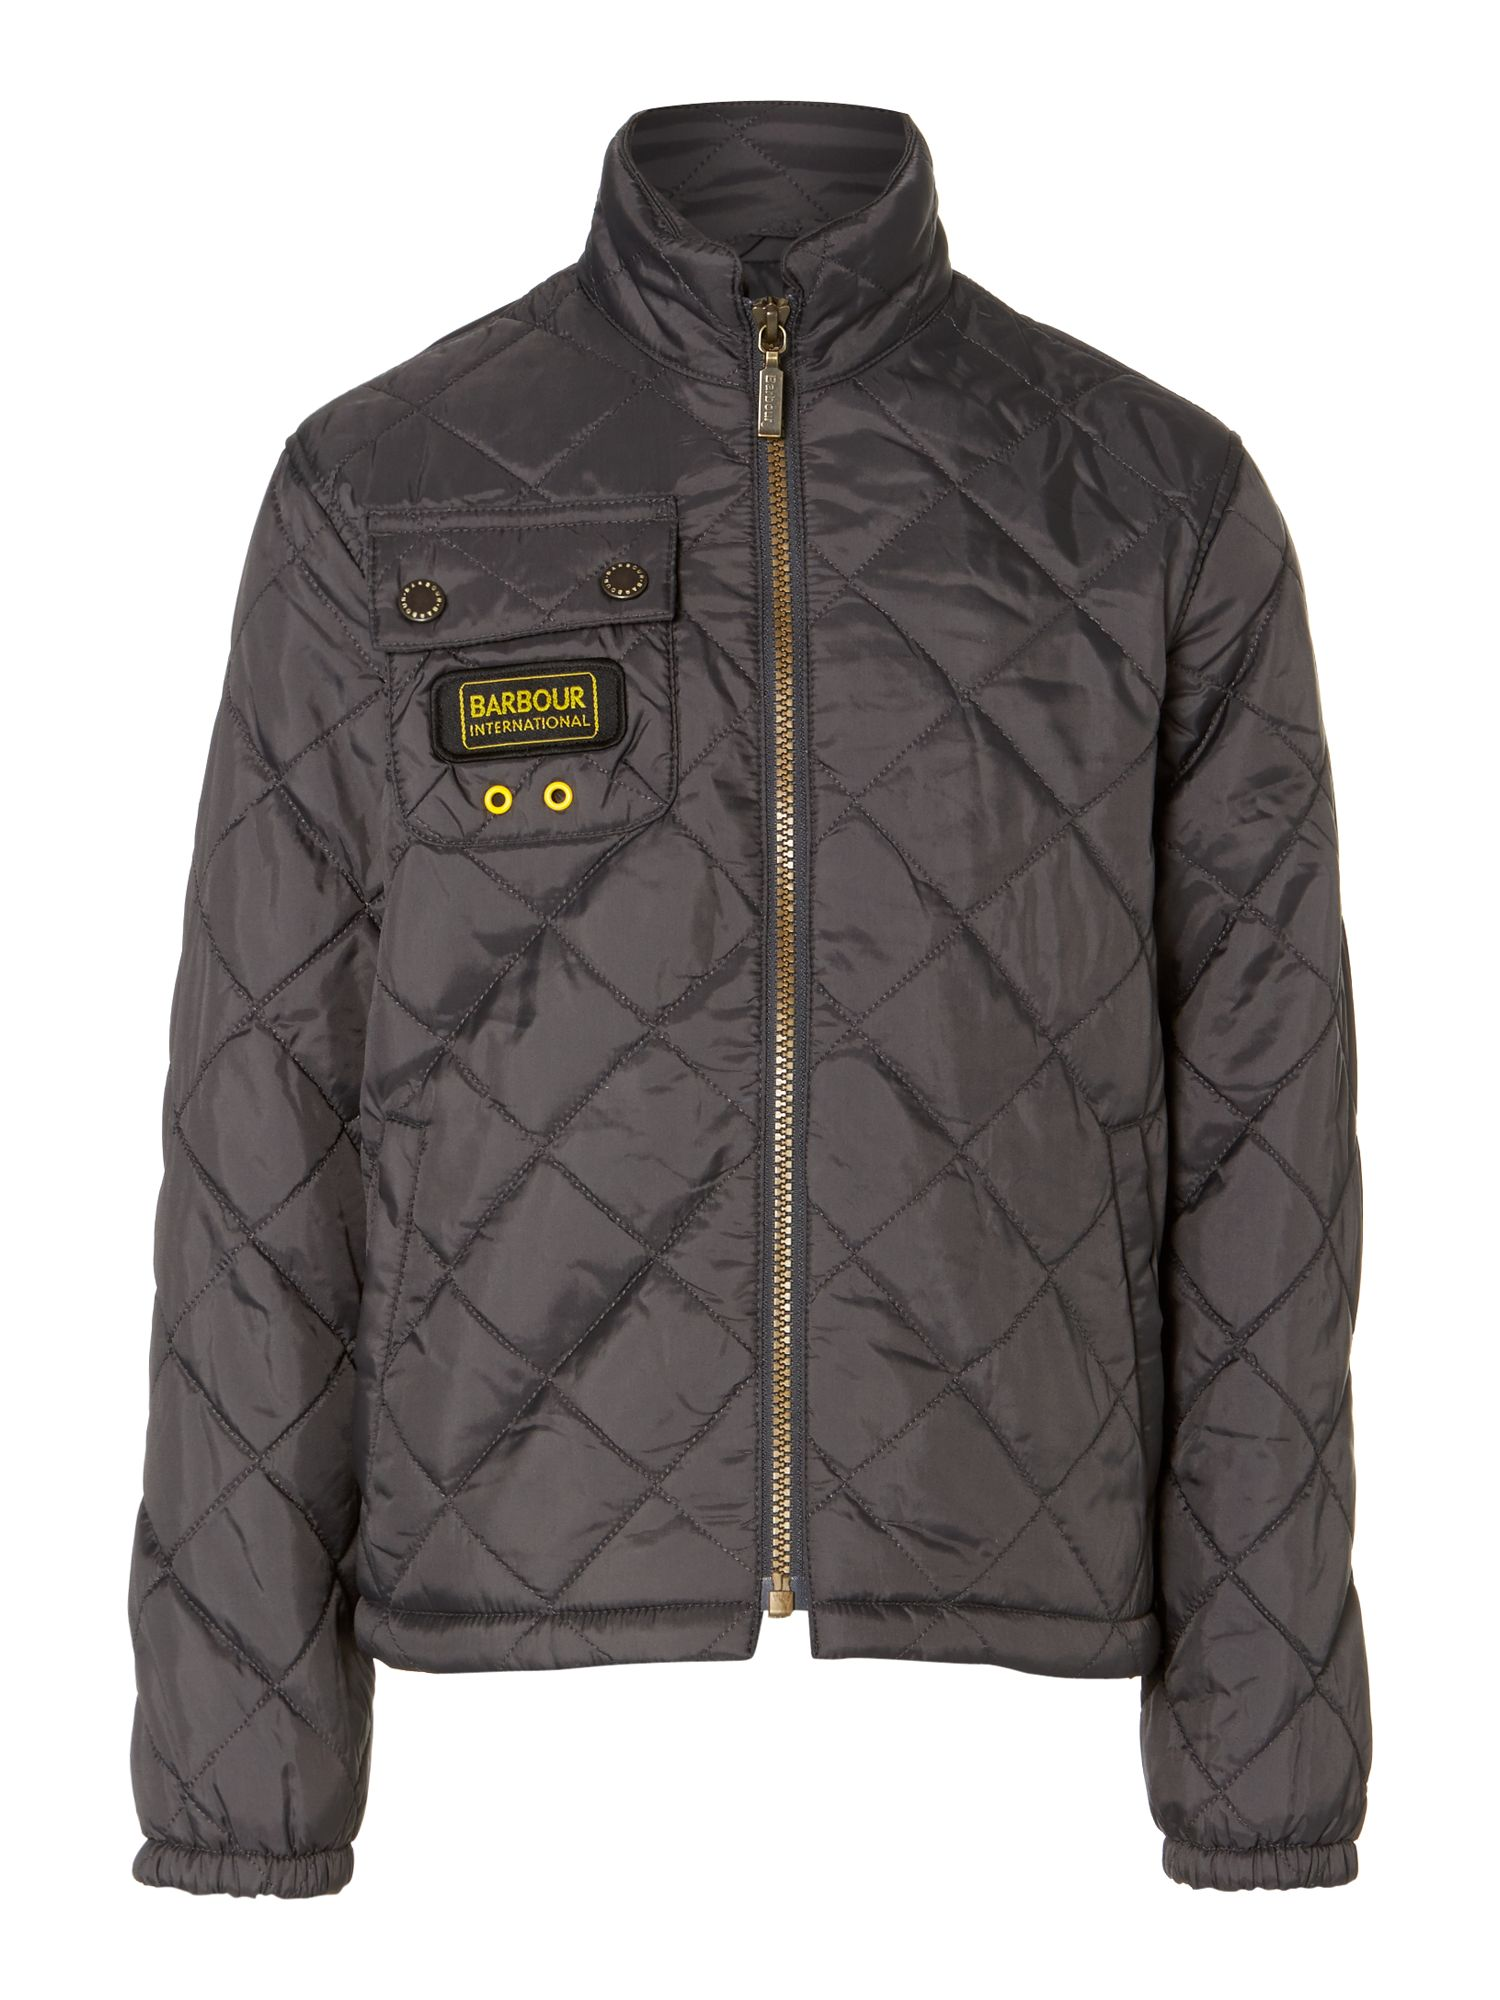 Boy's Bowmore International quilted jacket